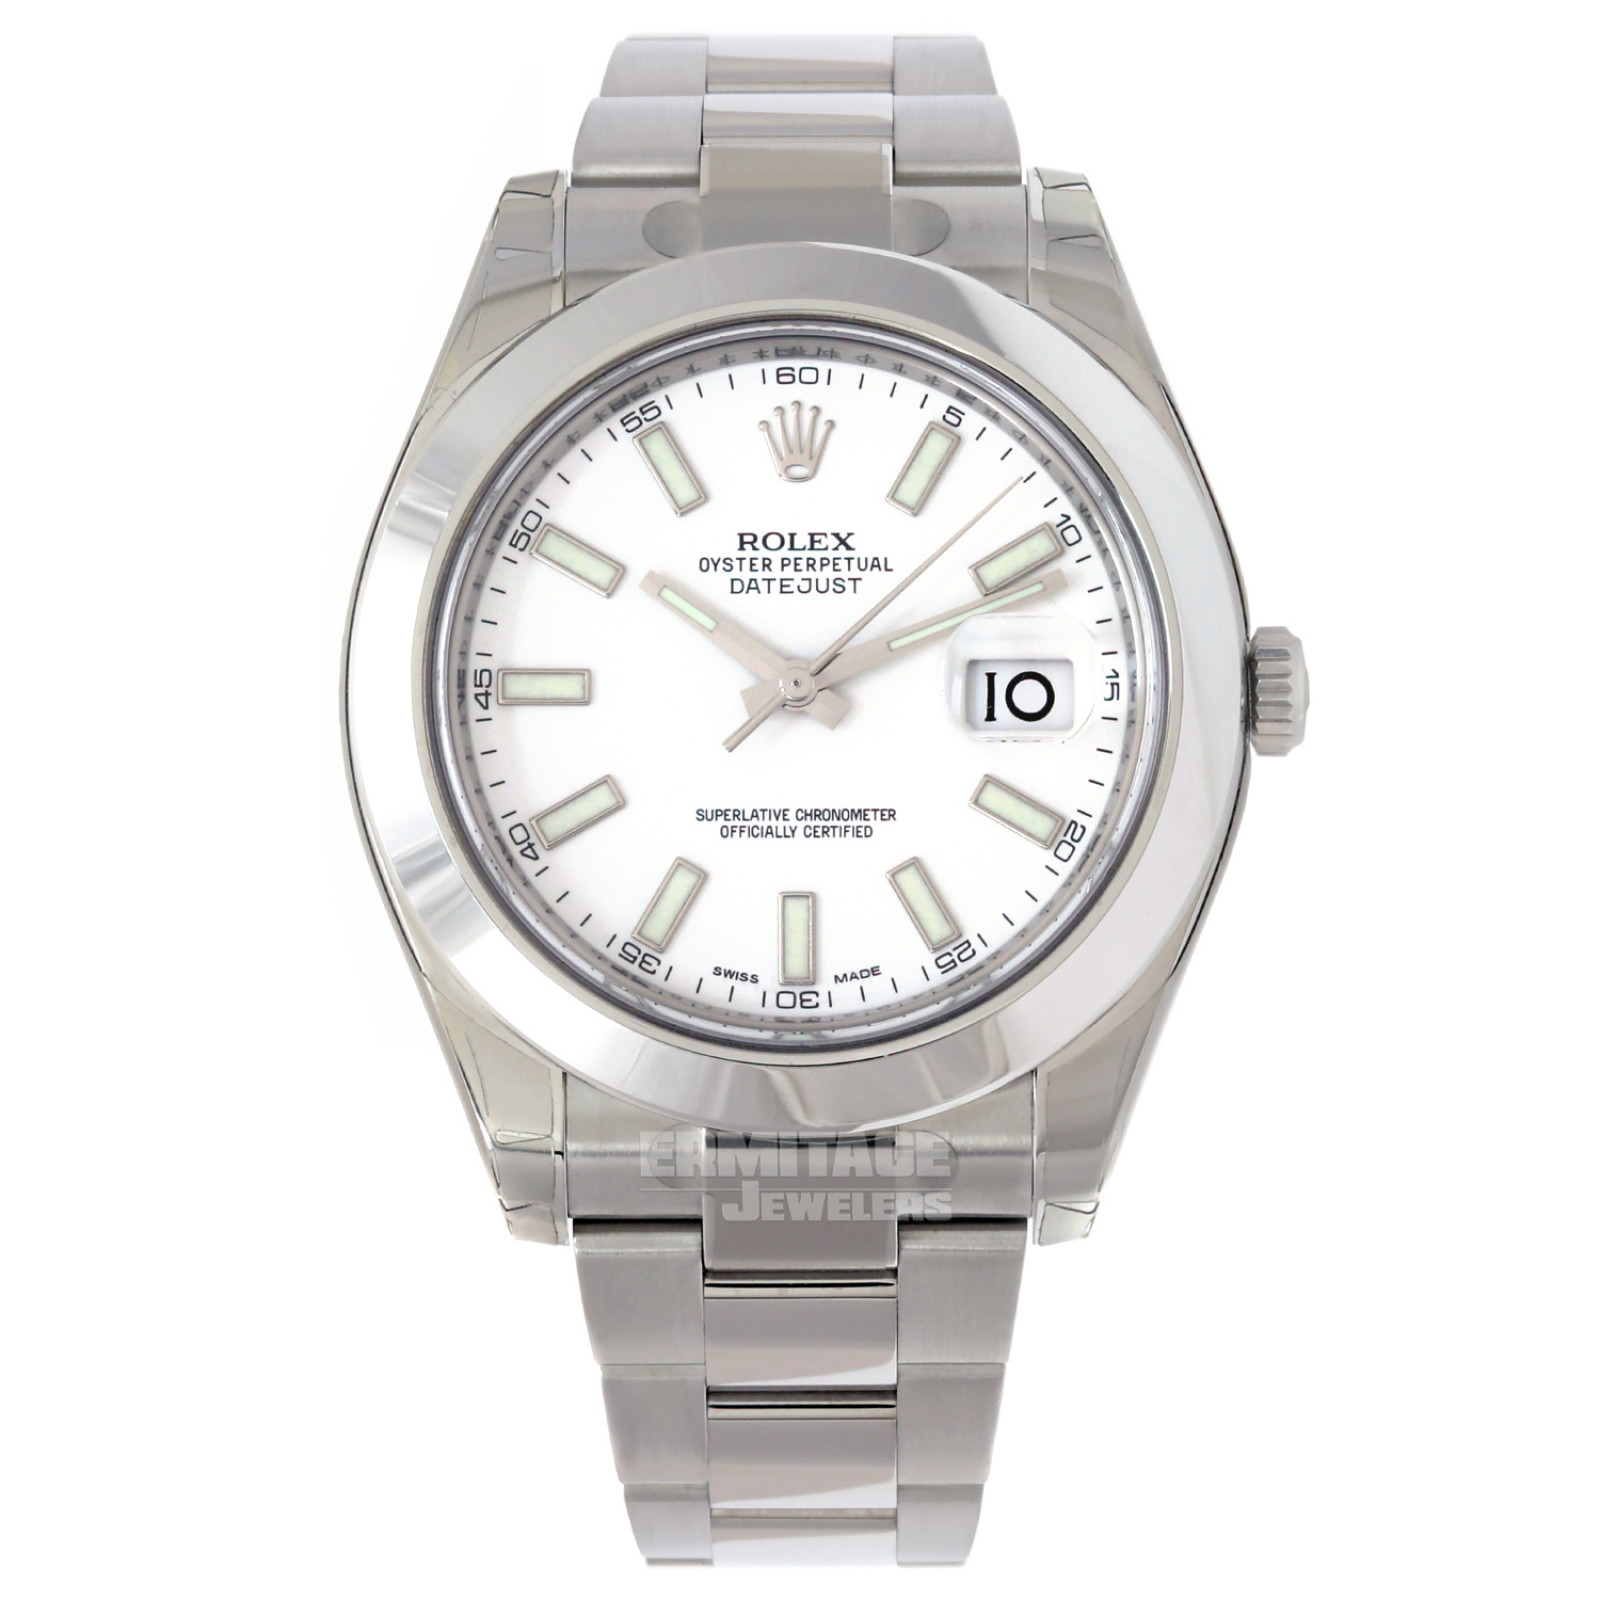 Rolex Datejust 116300 with White Dial